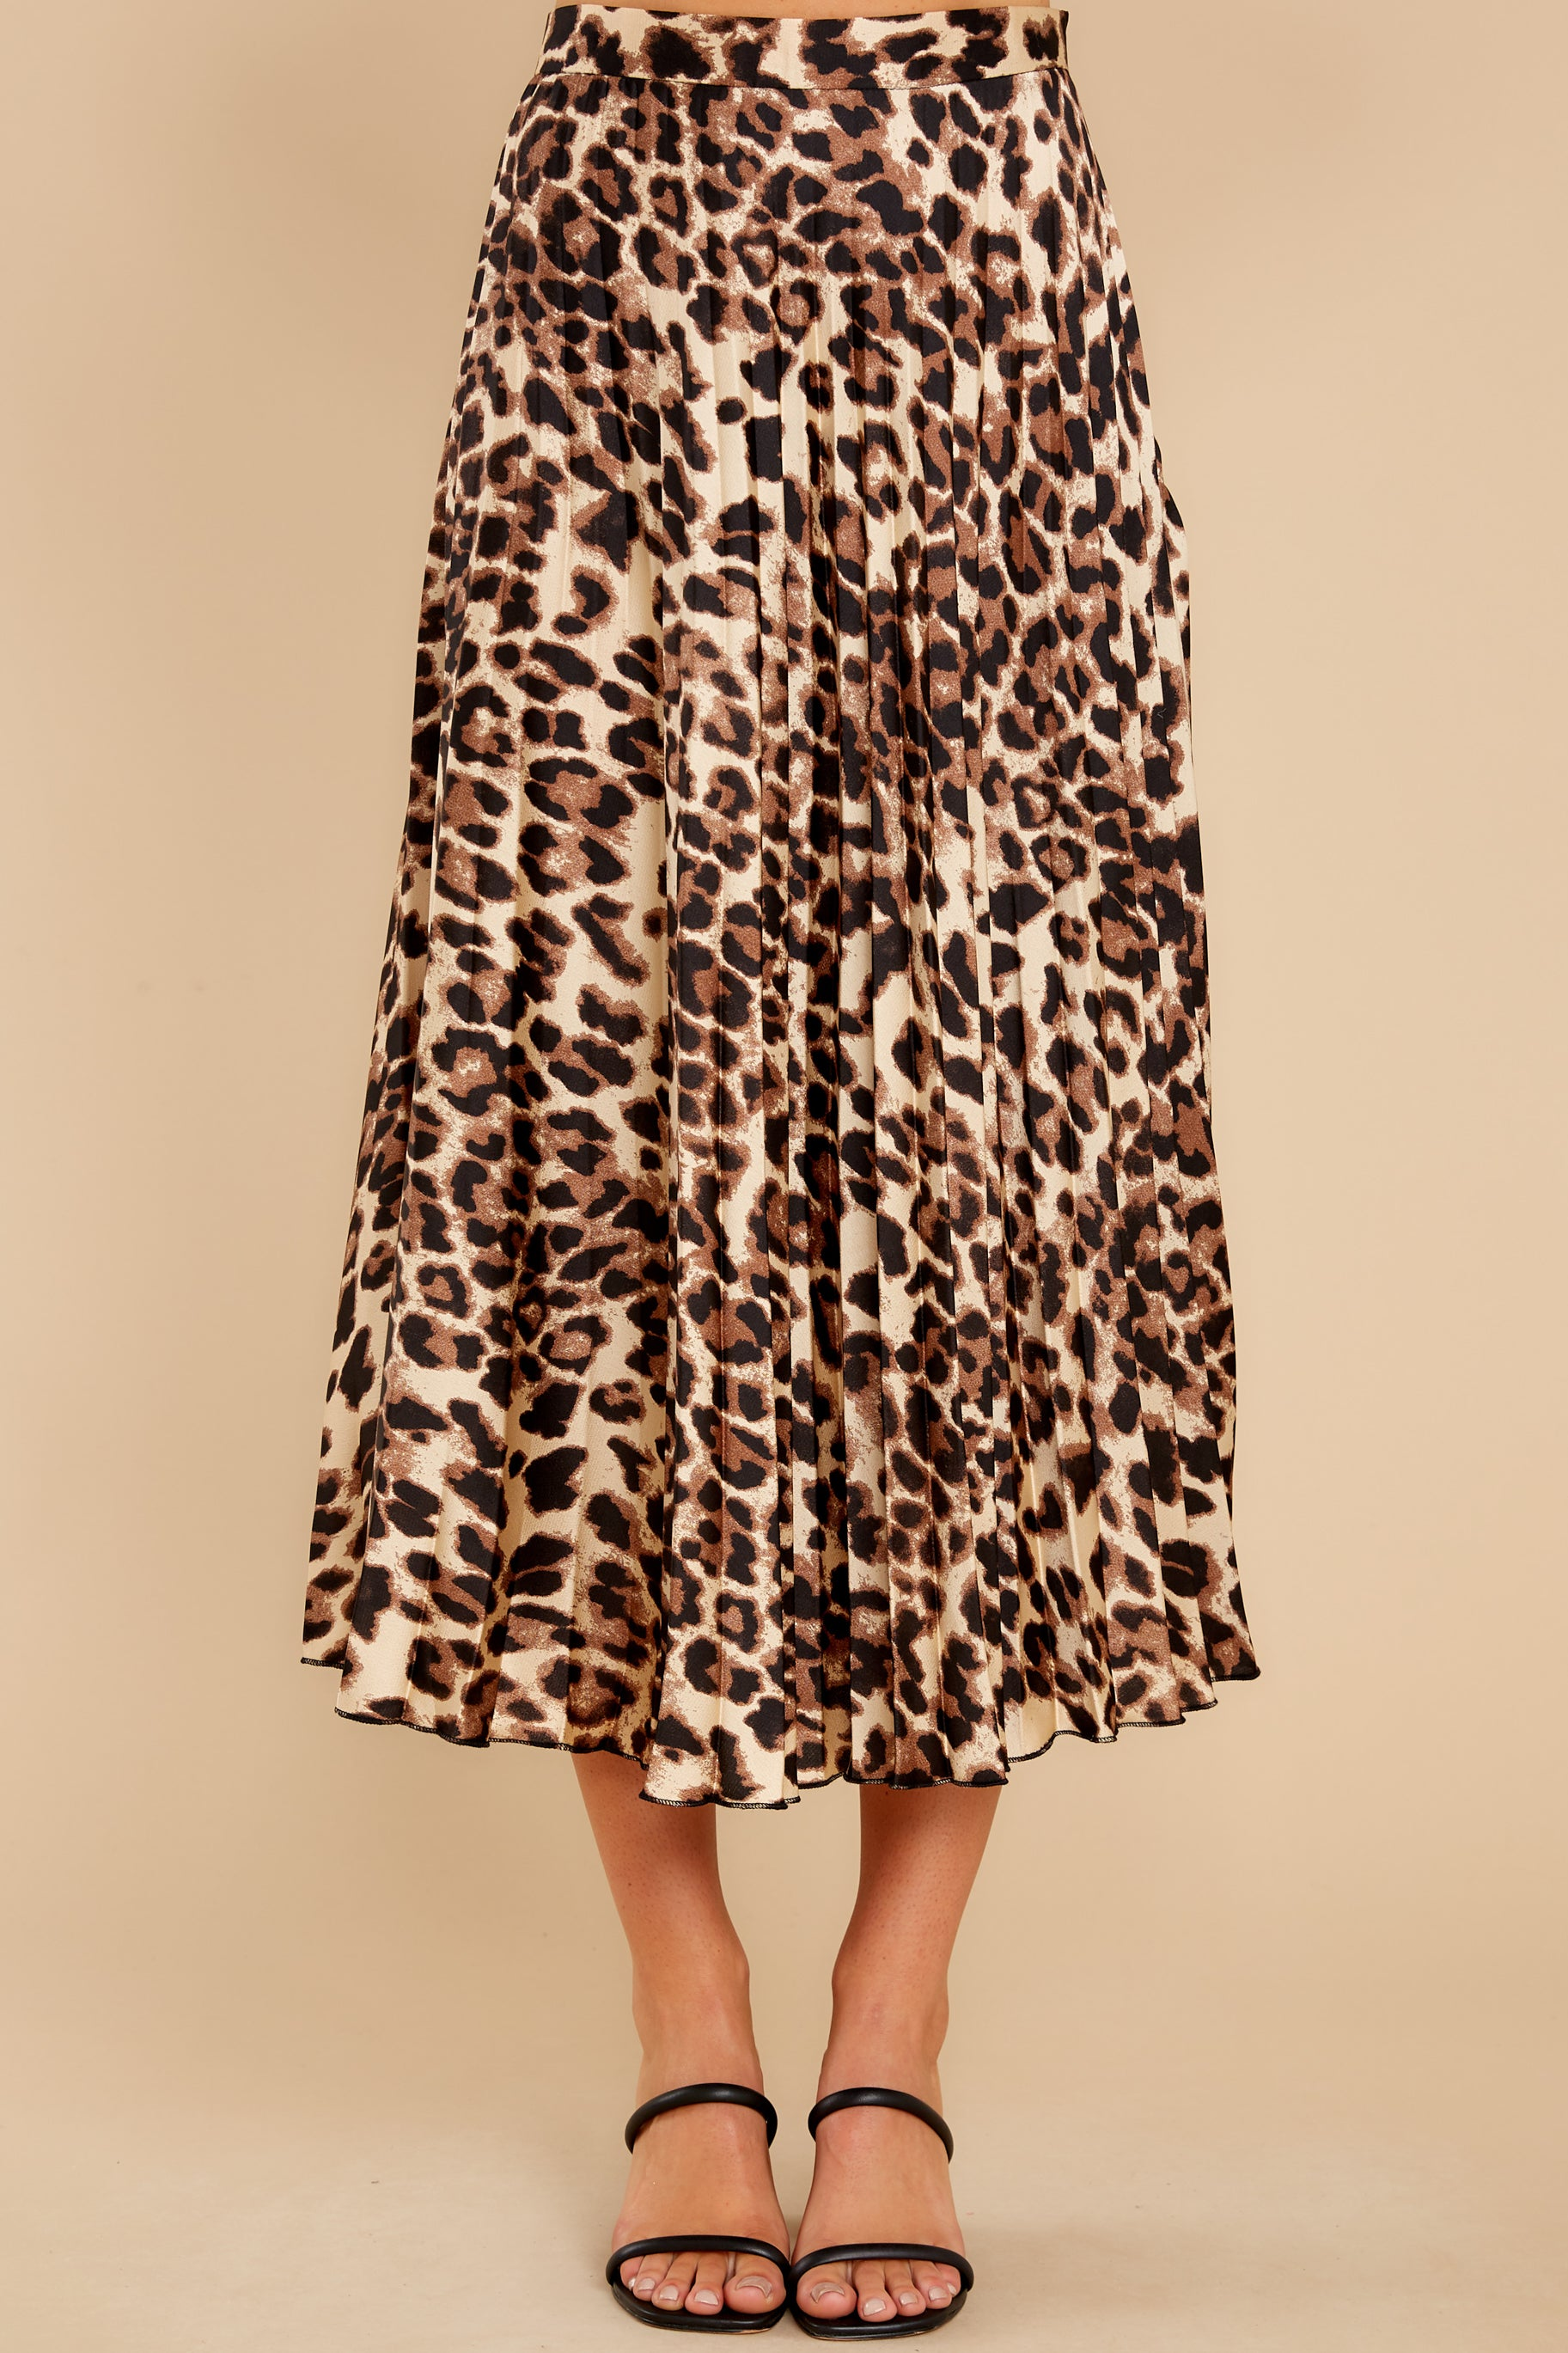 3 Act Wildly Leopard Print Midi Skirt at reddress.com